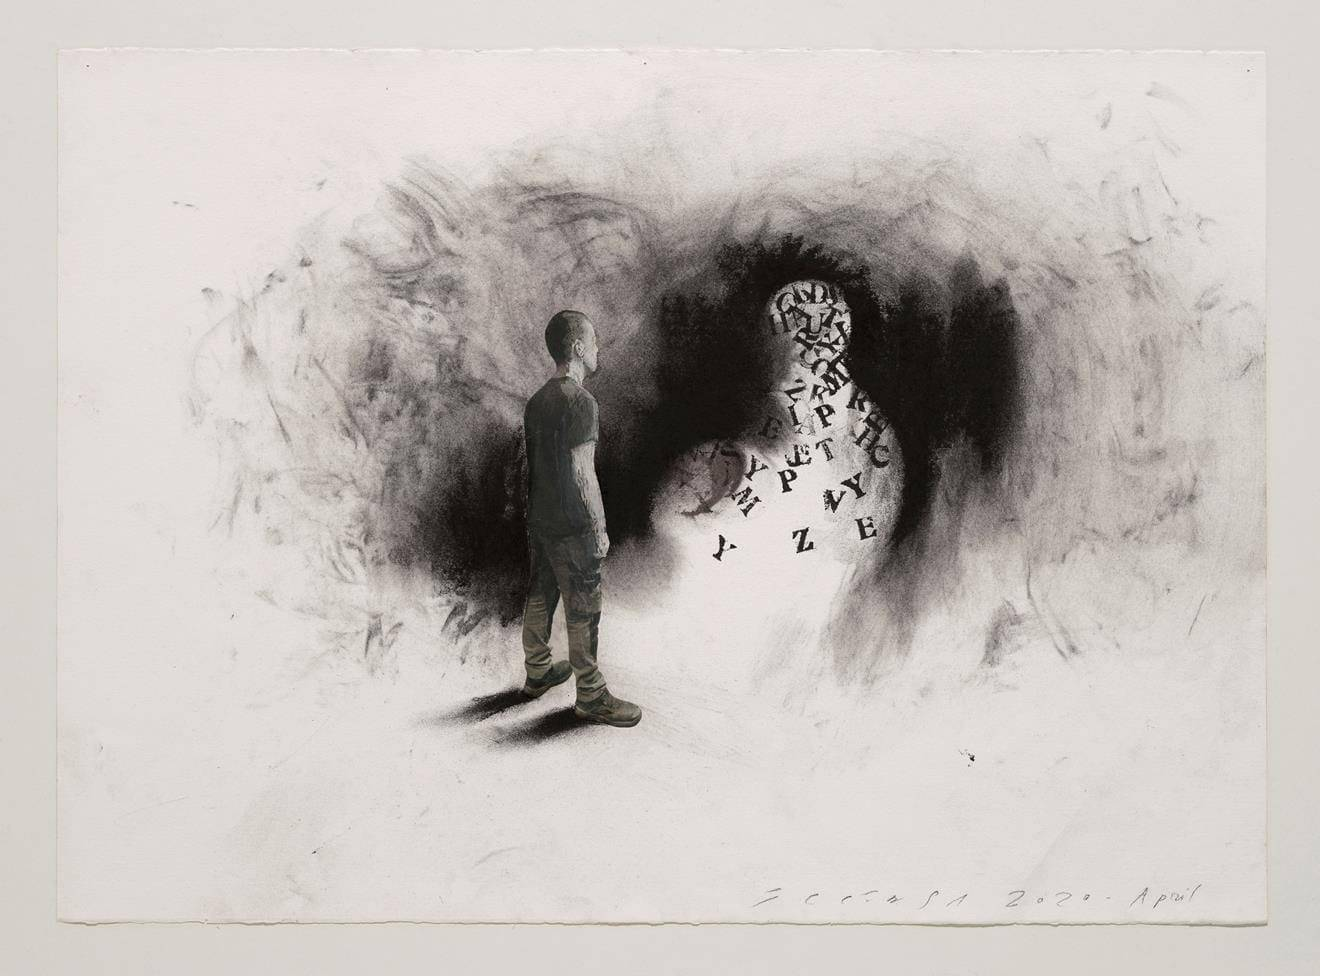 Jaume Plensa, STILL 04, 2020. Mixed media on paper, 20 x 27.5 inches (51 x 70 cm).